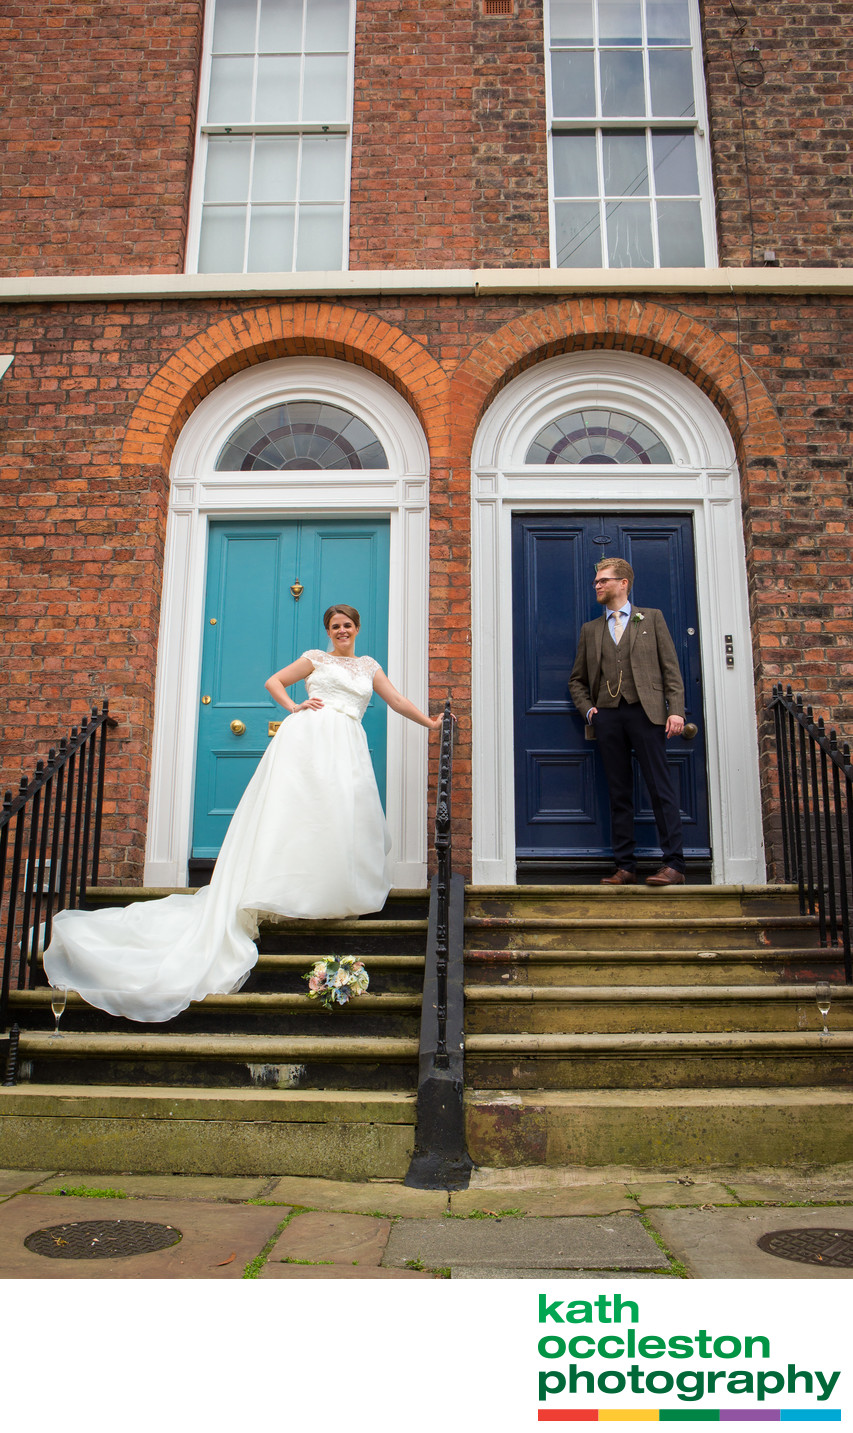 Urban wedding photography, Liverpool